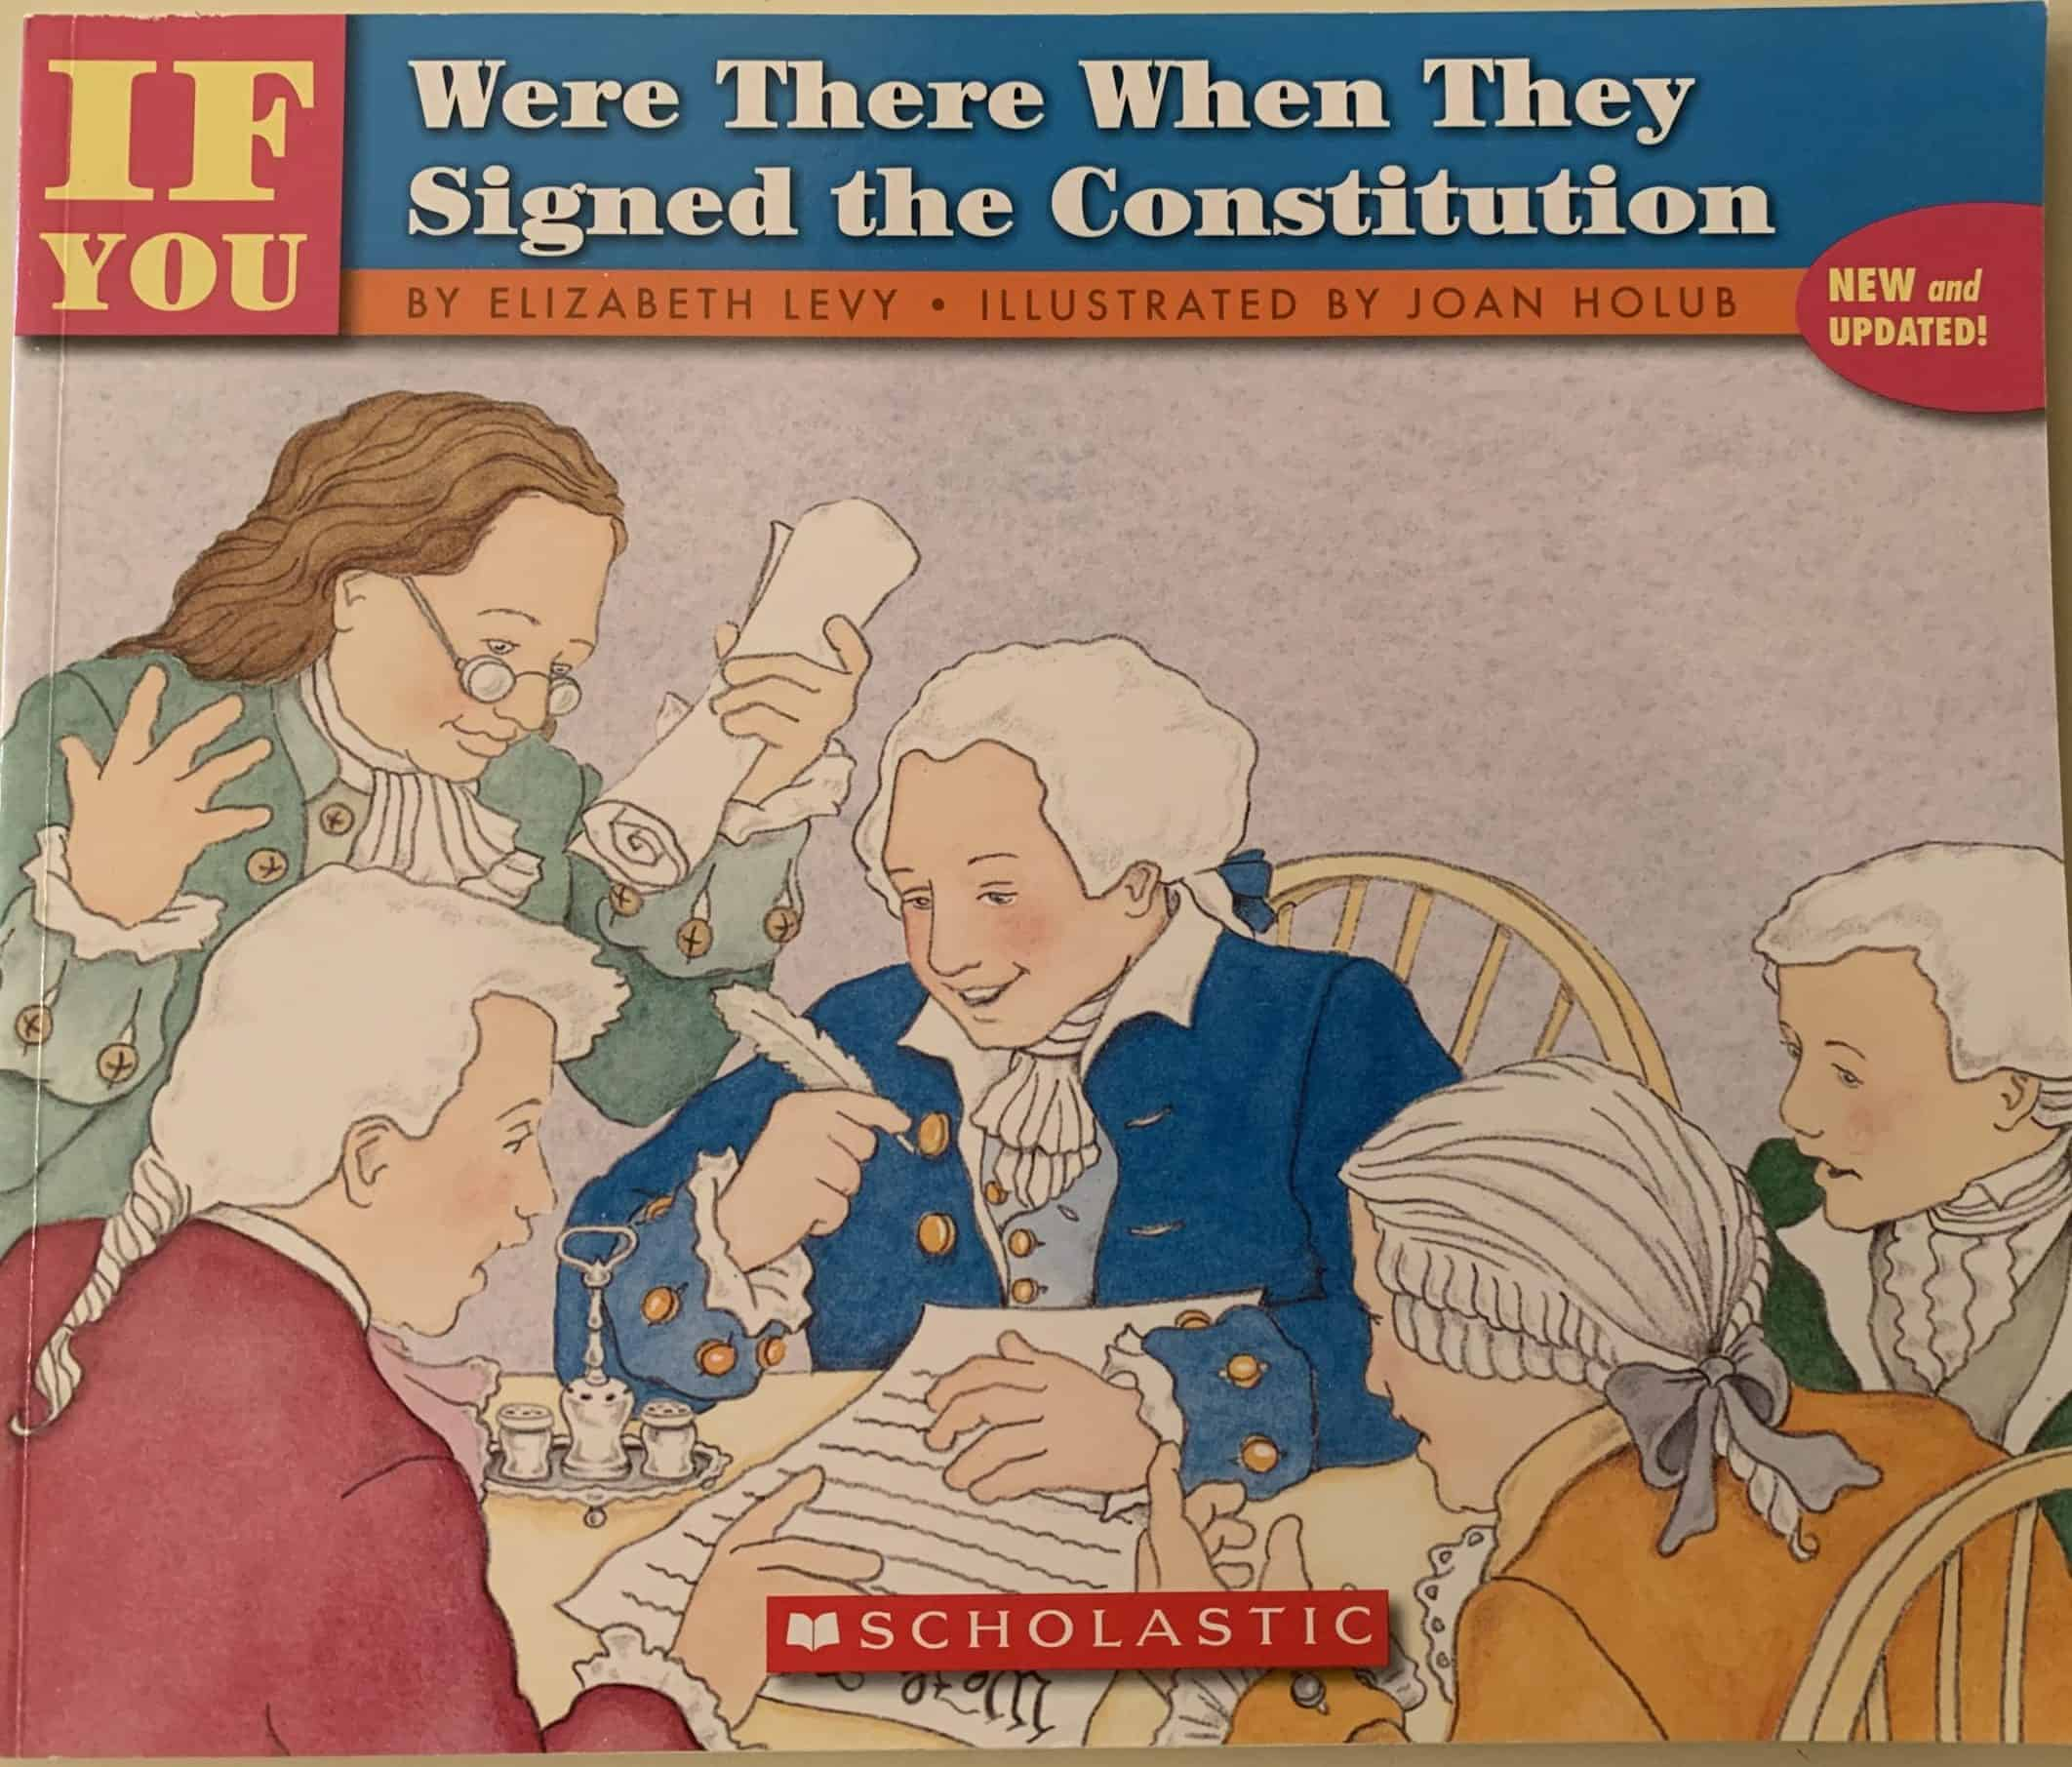 If You: Were There When They Signed the Constitution by Elizabeth Levy...